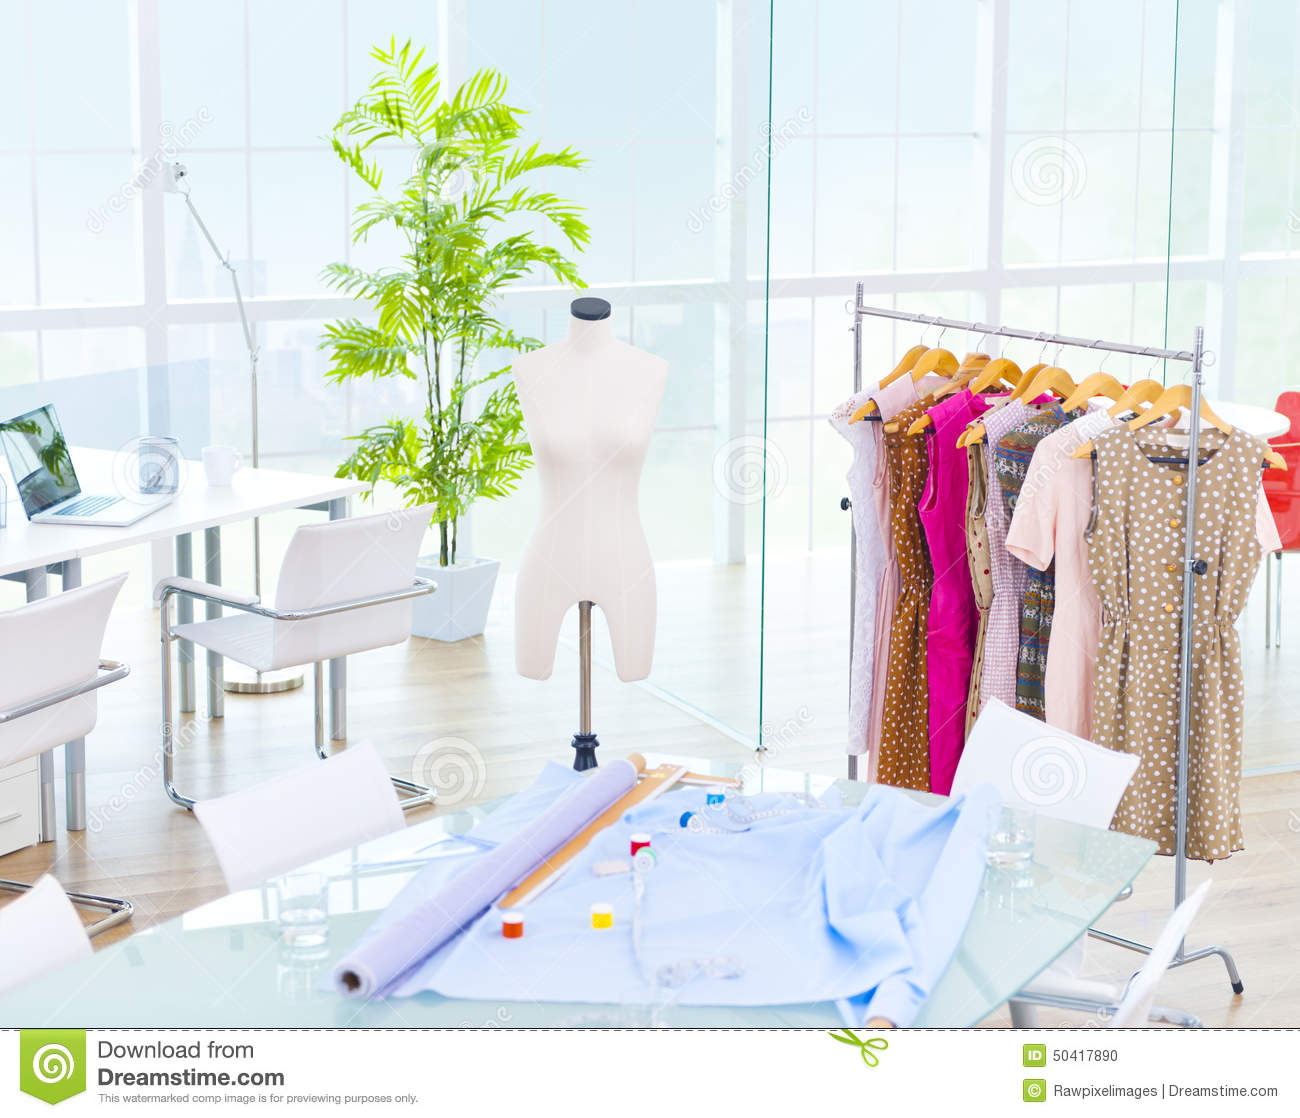 Design Room Office Fashion Studio Concept Stock Photo  Image of communications mannequin 50417890